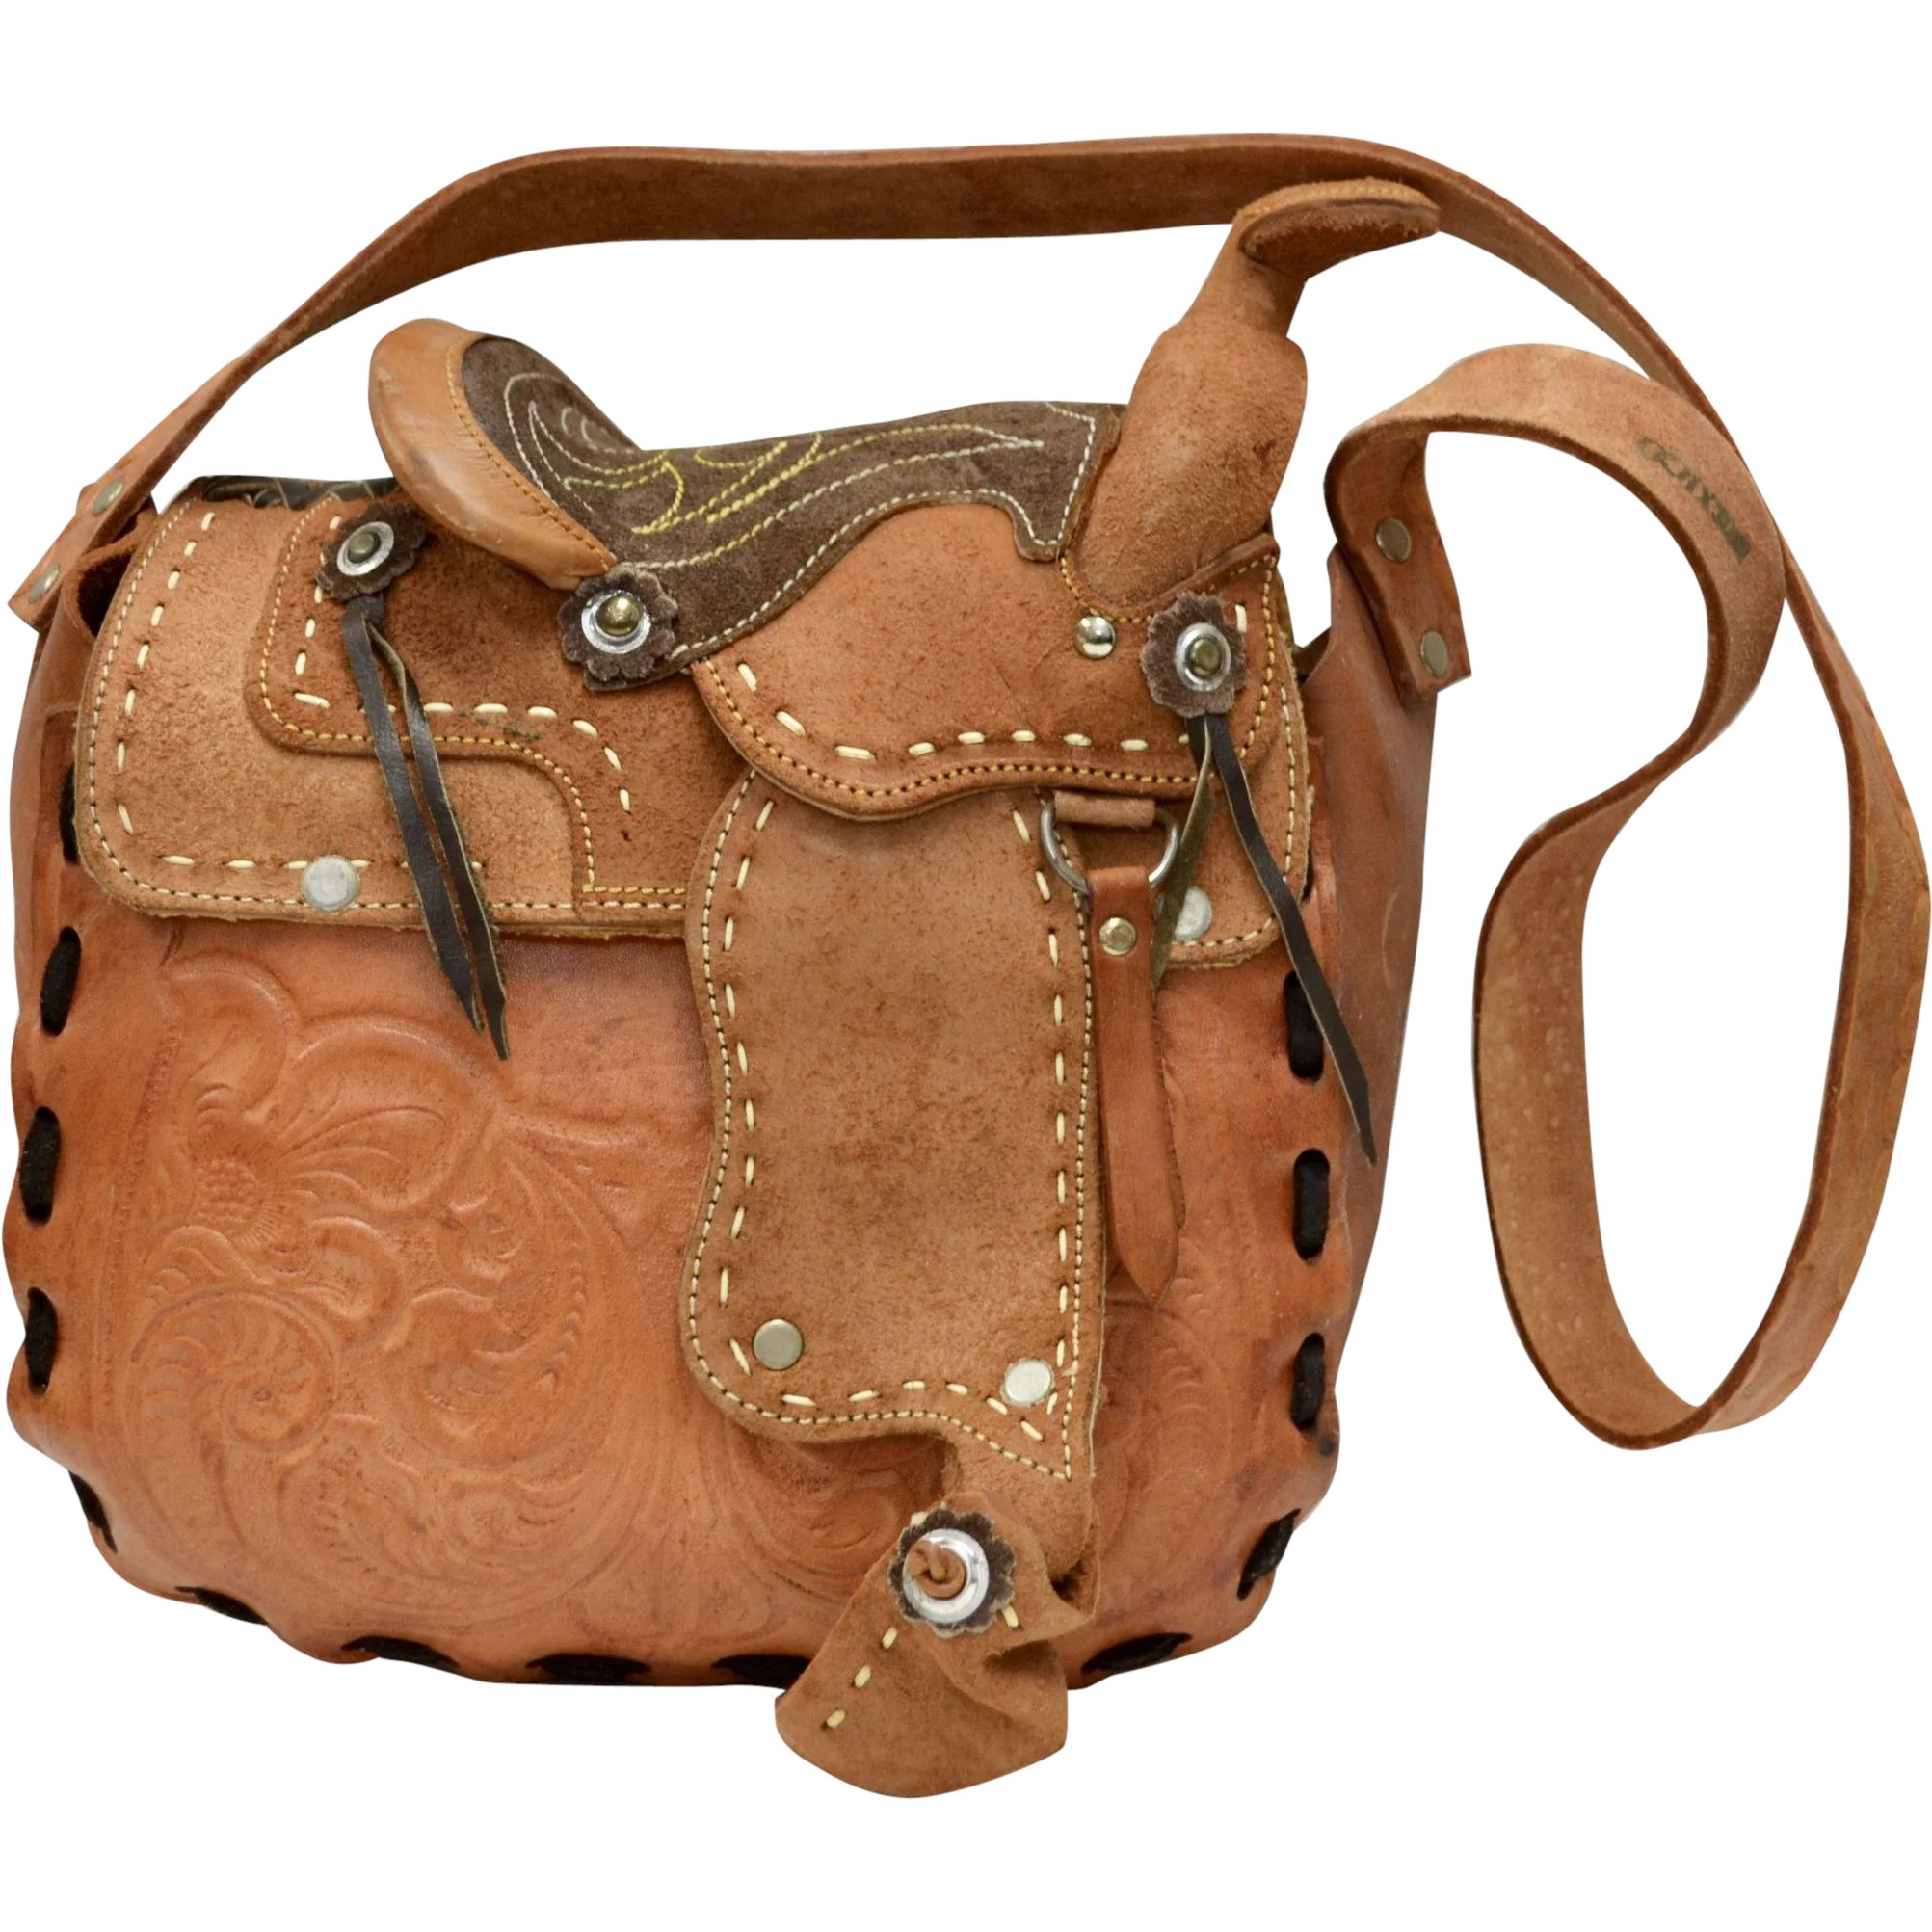 544cdb0bca Rare   Unusual Stamped Mexico Tooled Genuine Leather Saddle Bag Purse    Kitsch   Couture